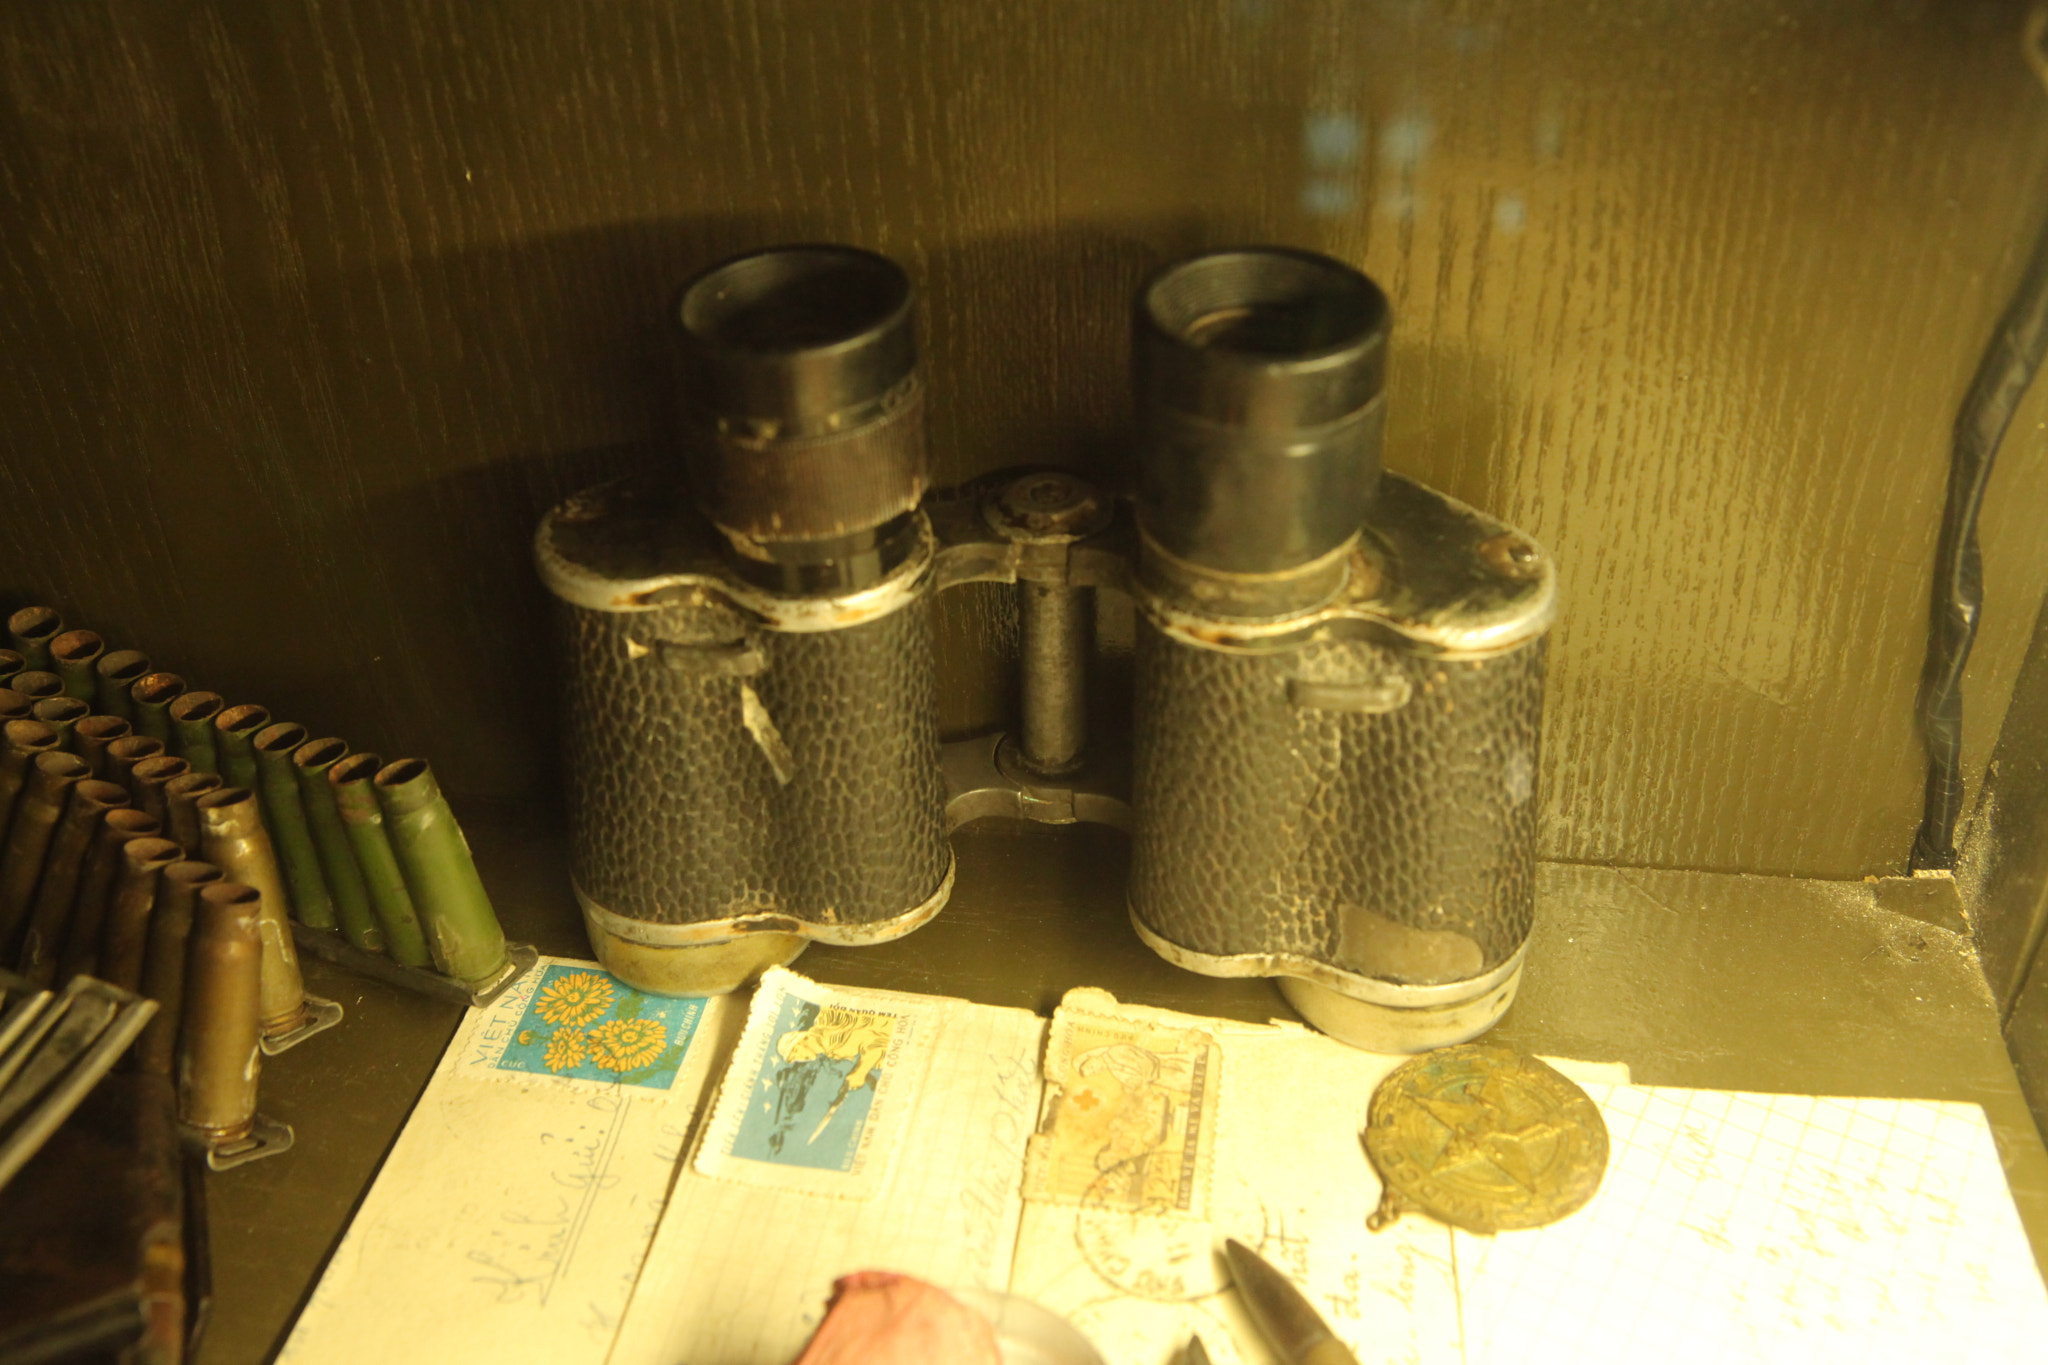 Photograph Old military binoculars by Duong Tuan Linh on 500px